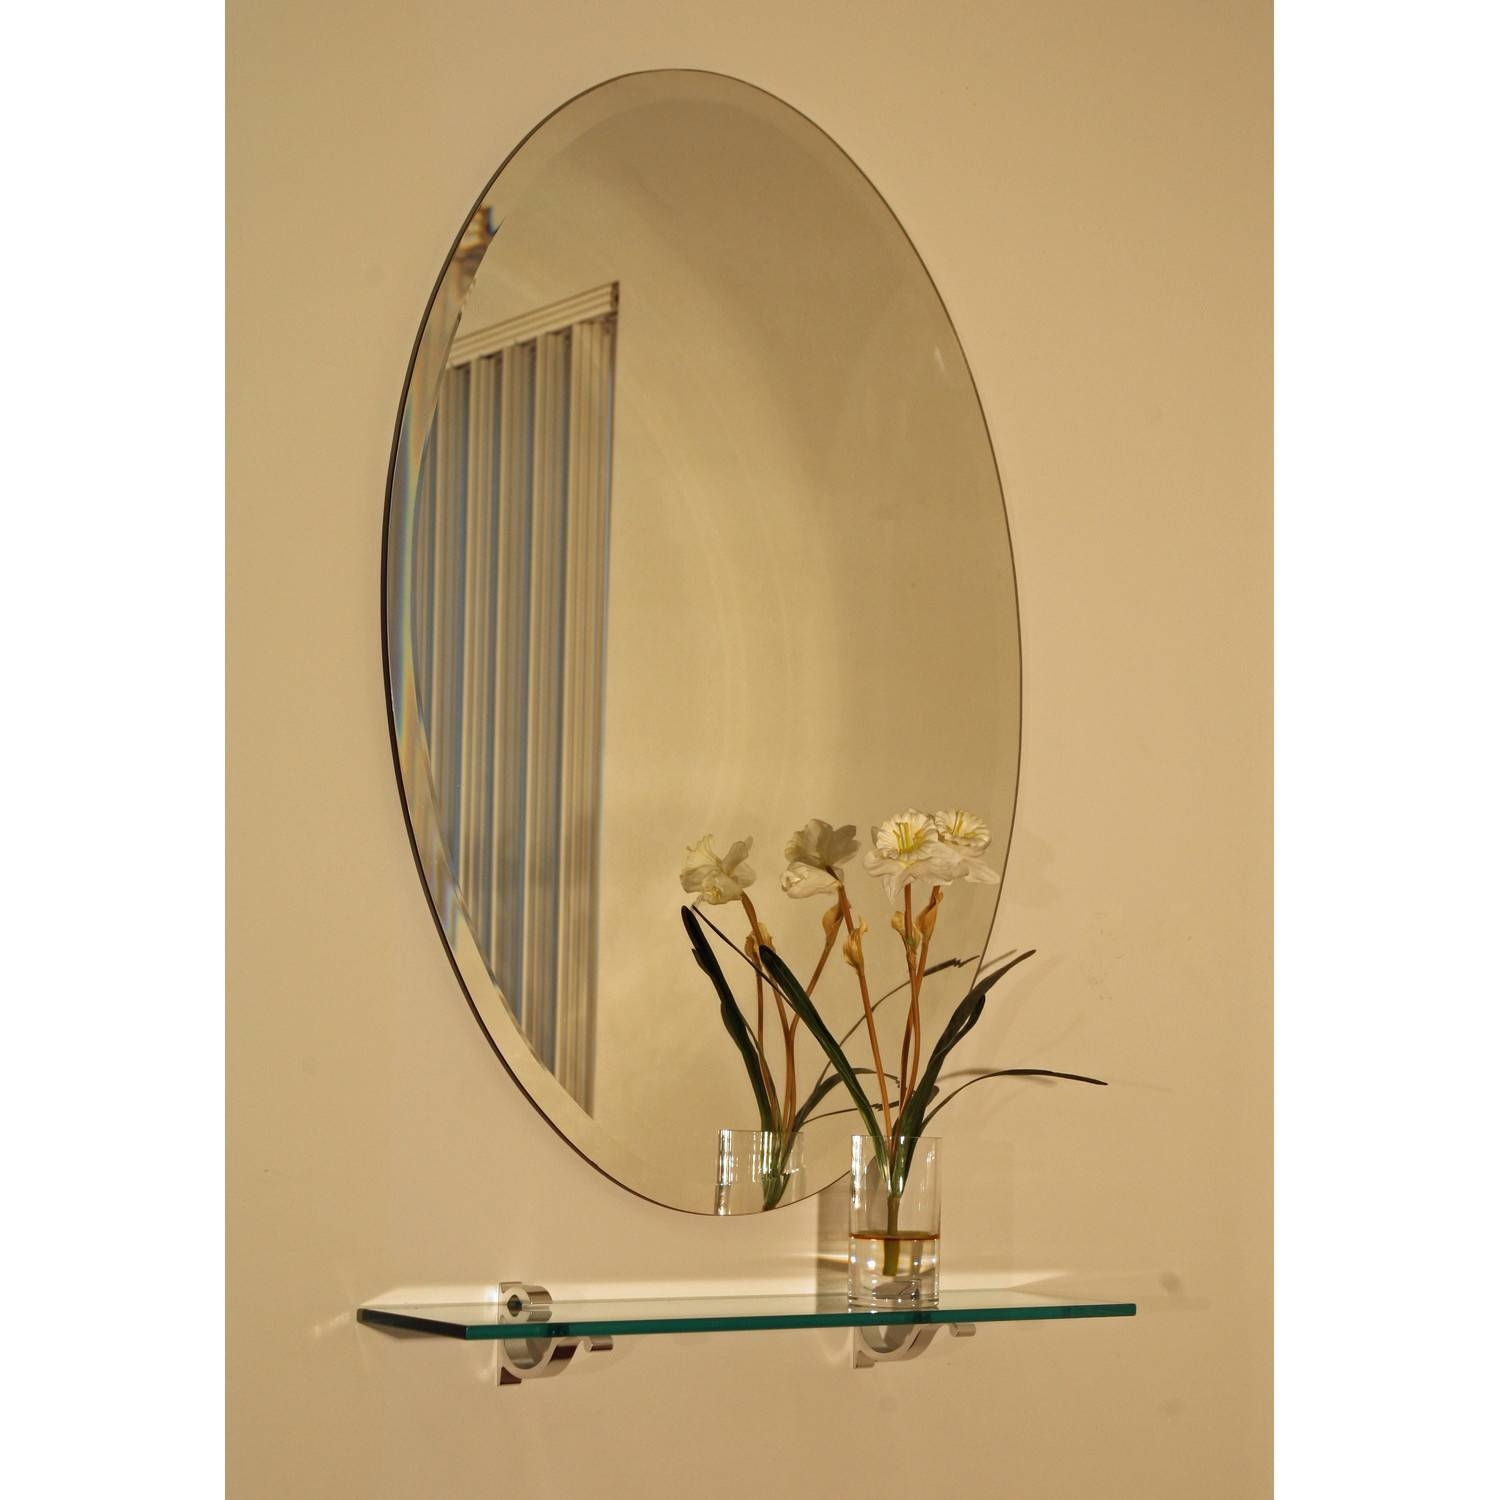 Regency 24 X 36 Oval Beveled Edge Mirror Spancraft Wall Mirror intended for No Frame Wall Mirrors (Image 6 of 25)